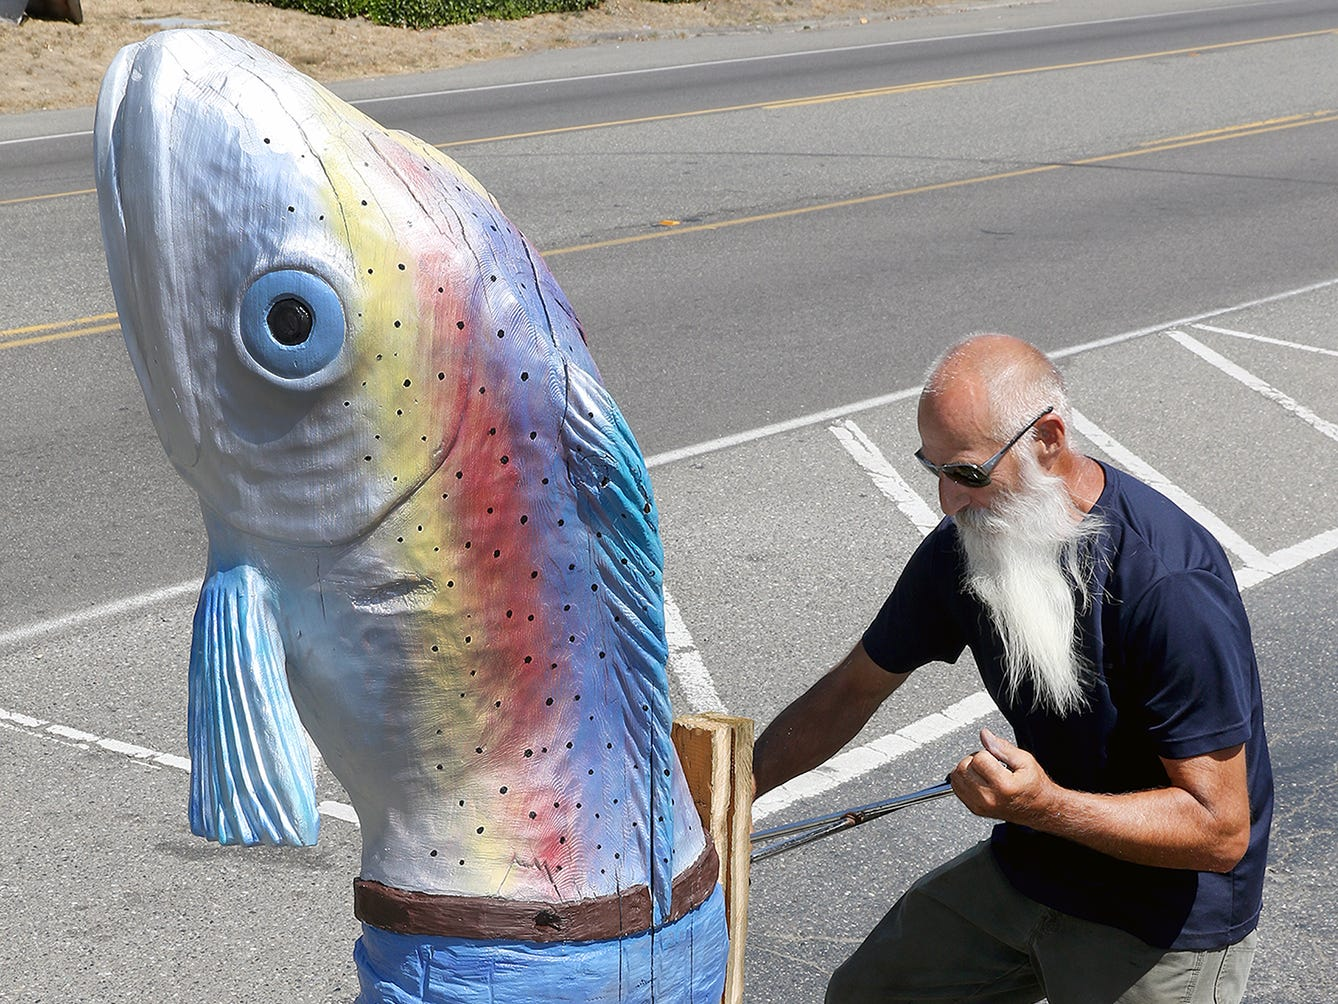 The Kingston troll statues have found a new home, at the Kingston Mercantile & Marine on Highway 104. Original carver Terry Tessmer from Central Point, Oregon, uses a tire lug wrench to bolt a refurbished one in position along the highway in front of the store,